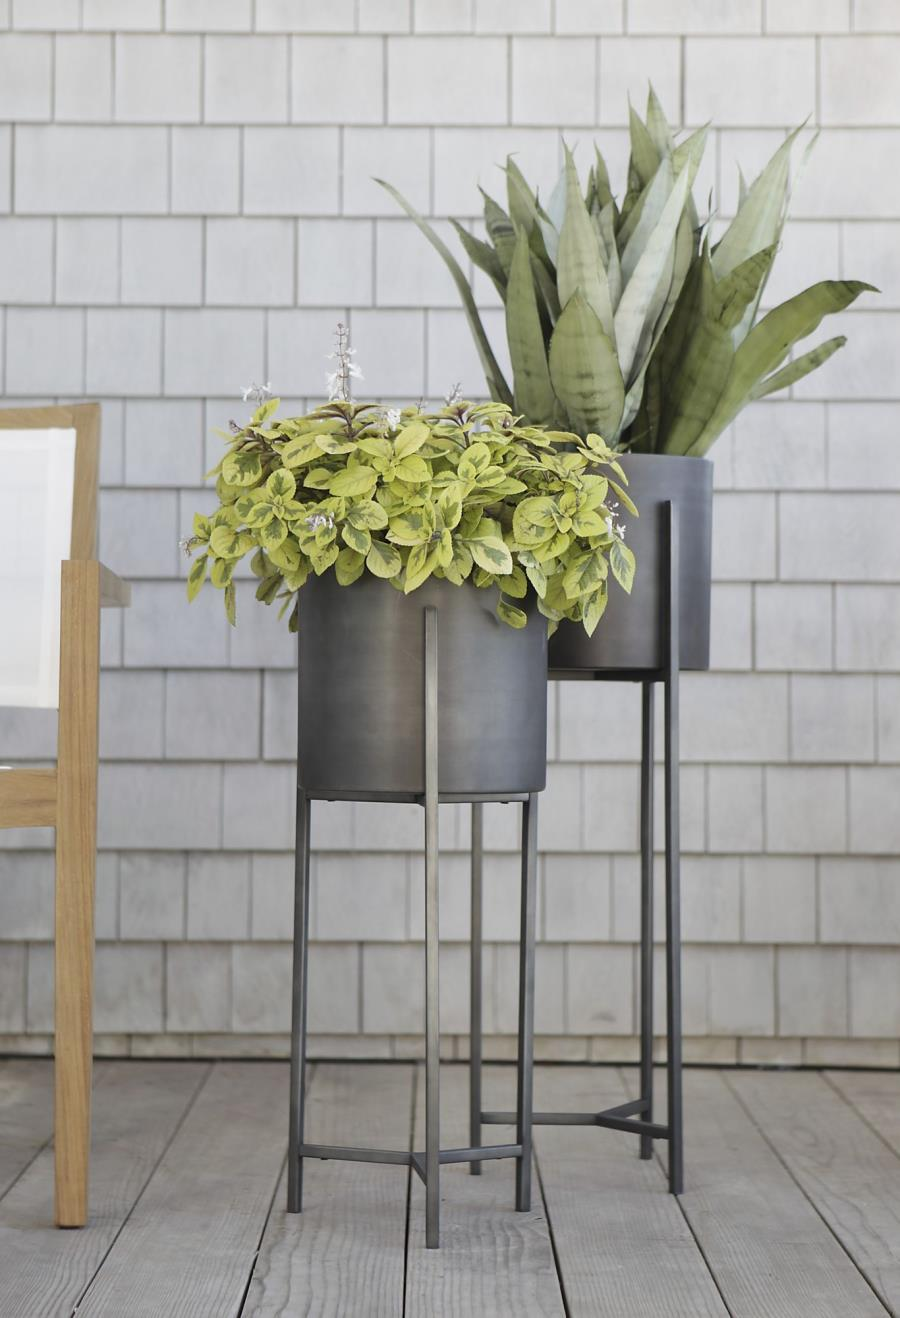 Sleek modern planters from Crate & Barrel